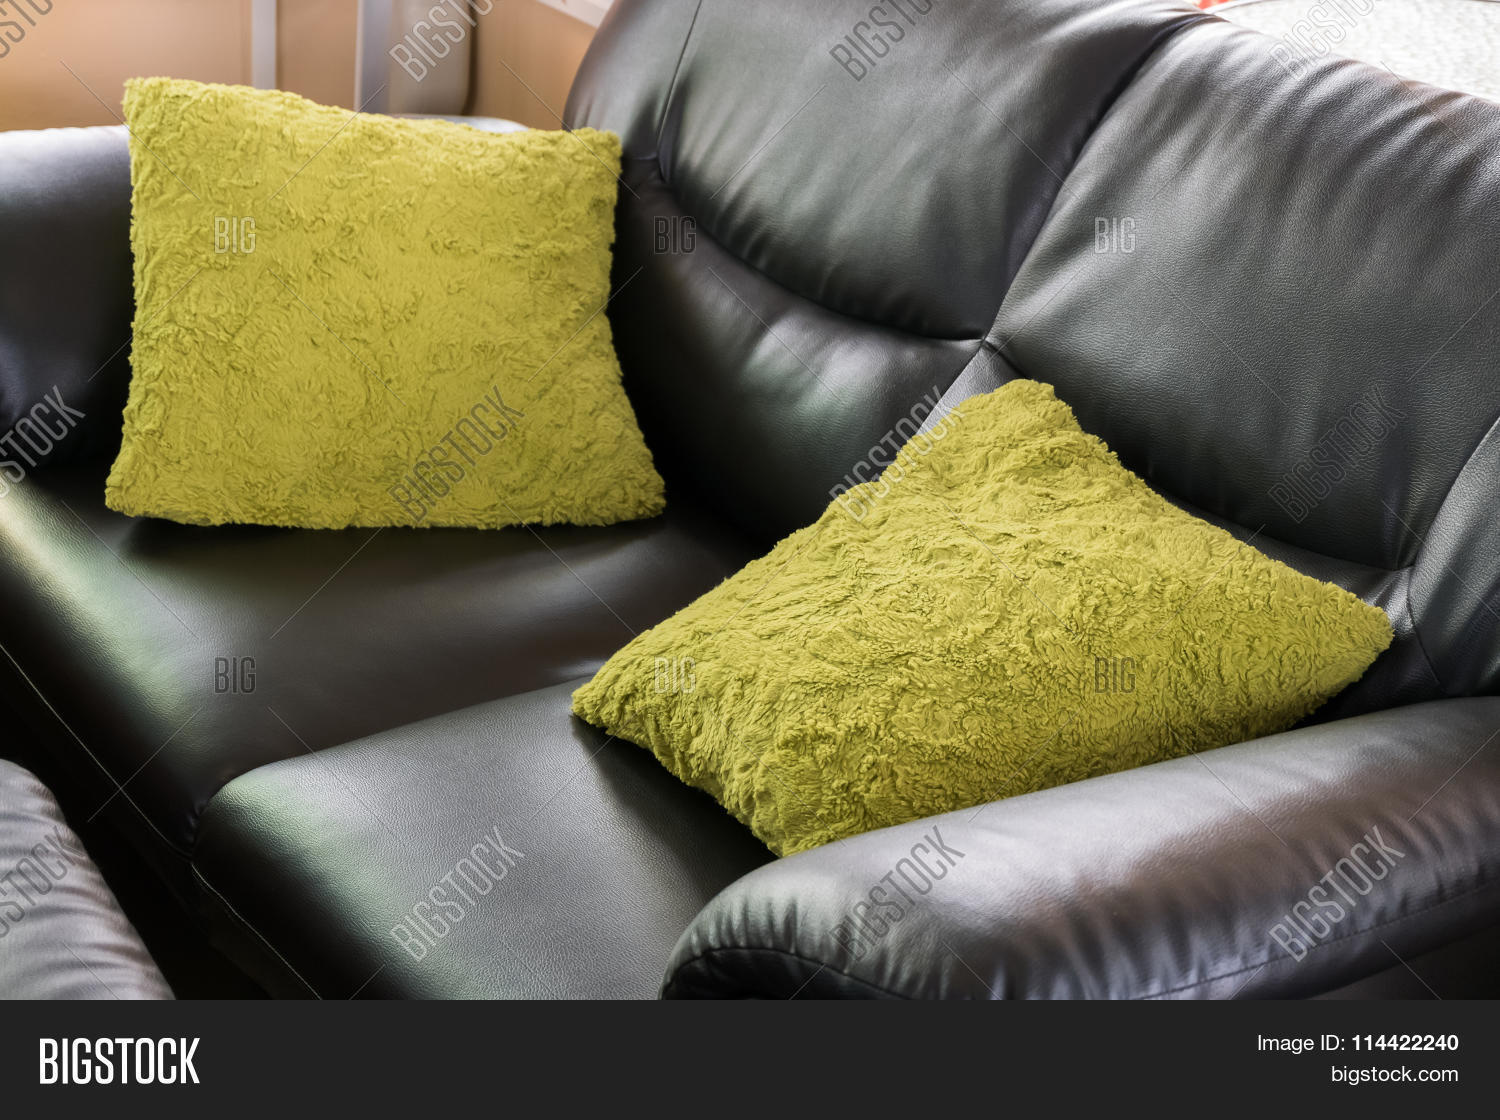 Black Leather Sofa Image Photo Free Trial Bigstock